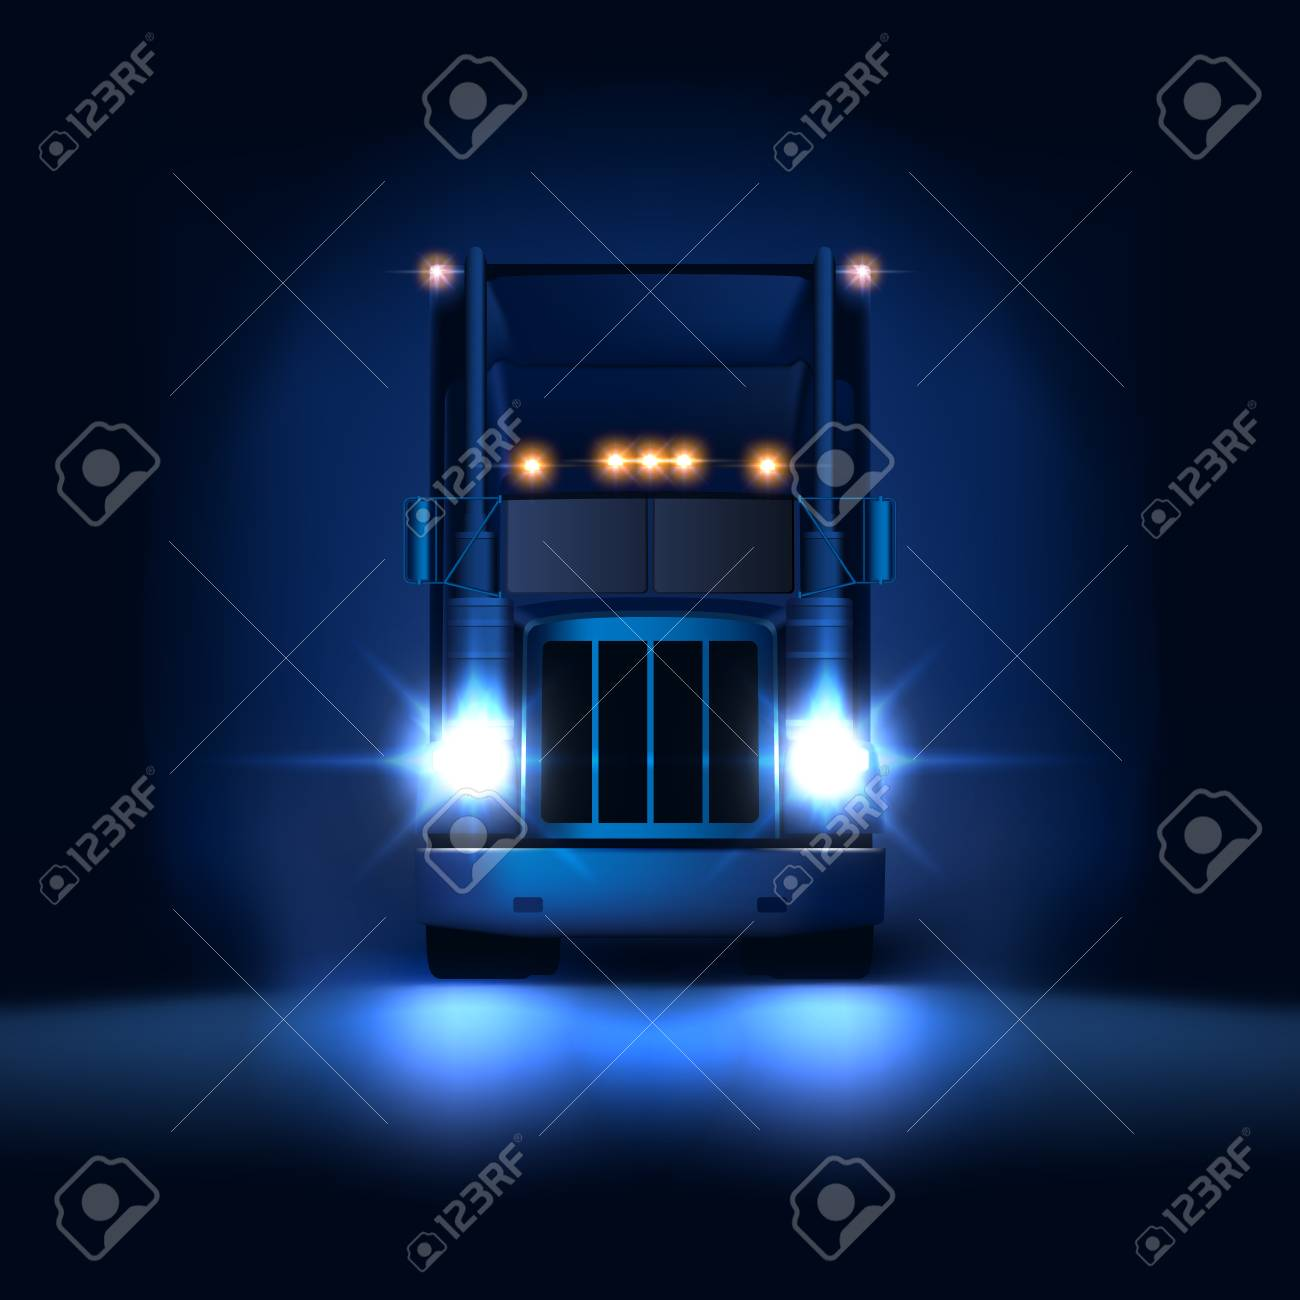 Night large classic big rig semi truck with headlights and dry van semi riding on the dark night background front view, vector illustration - 113578519